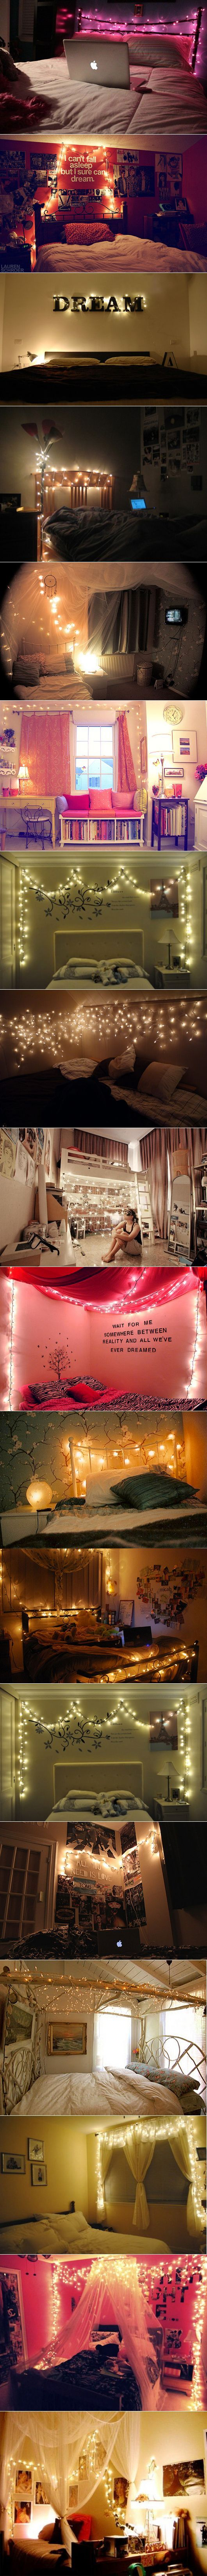 Bedroom christmas lights quotes - 17 Best Ideas About Christmas Lights Room On Pinterest Christmas Projection Lights Christmas Lights Bedroom And Christmas Lights Decor